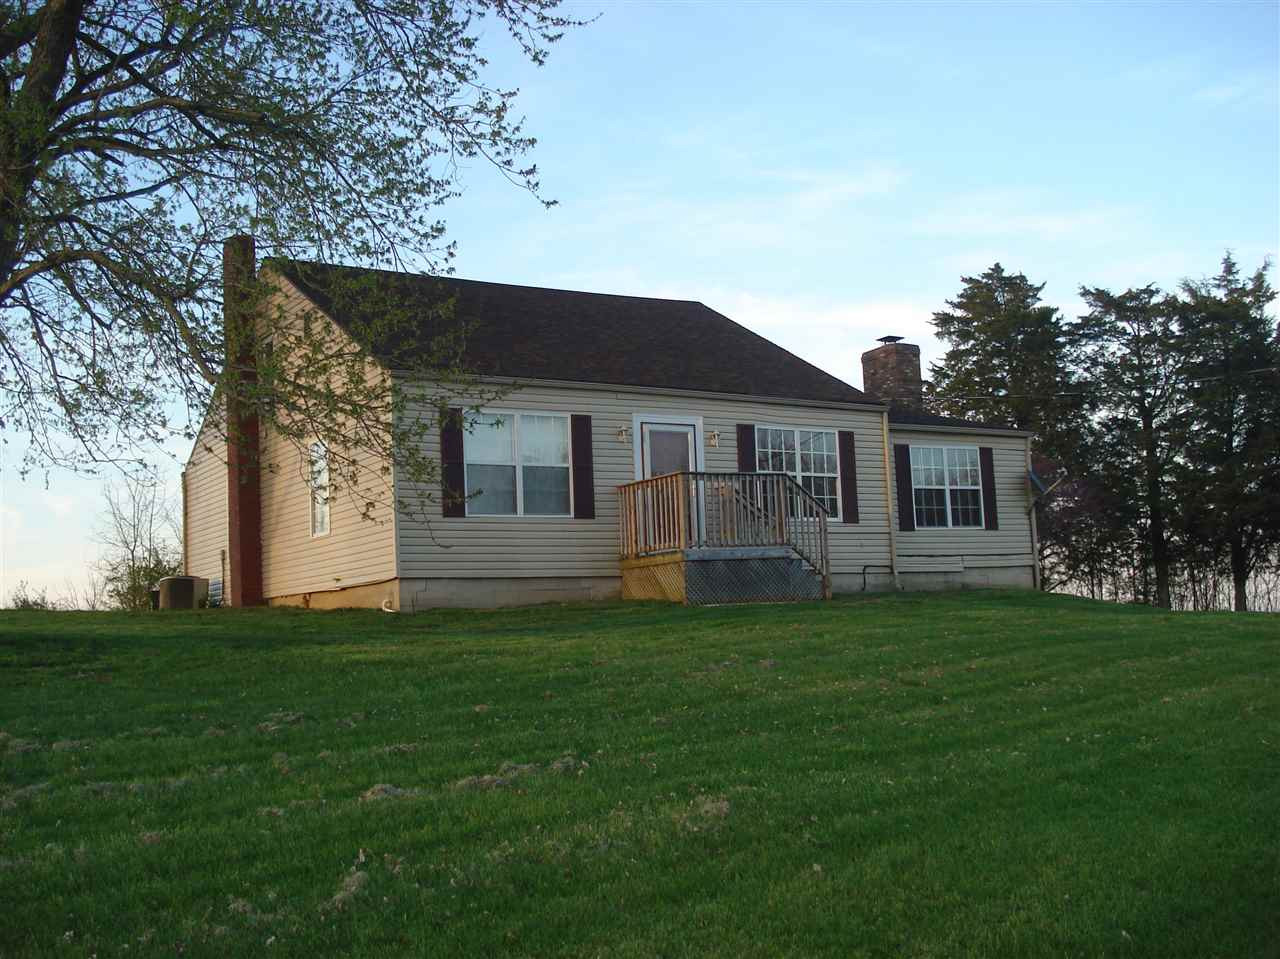 Photo 1 for 55 Kendall Branch Rd Cynthiana, KY 41031